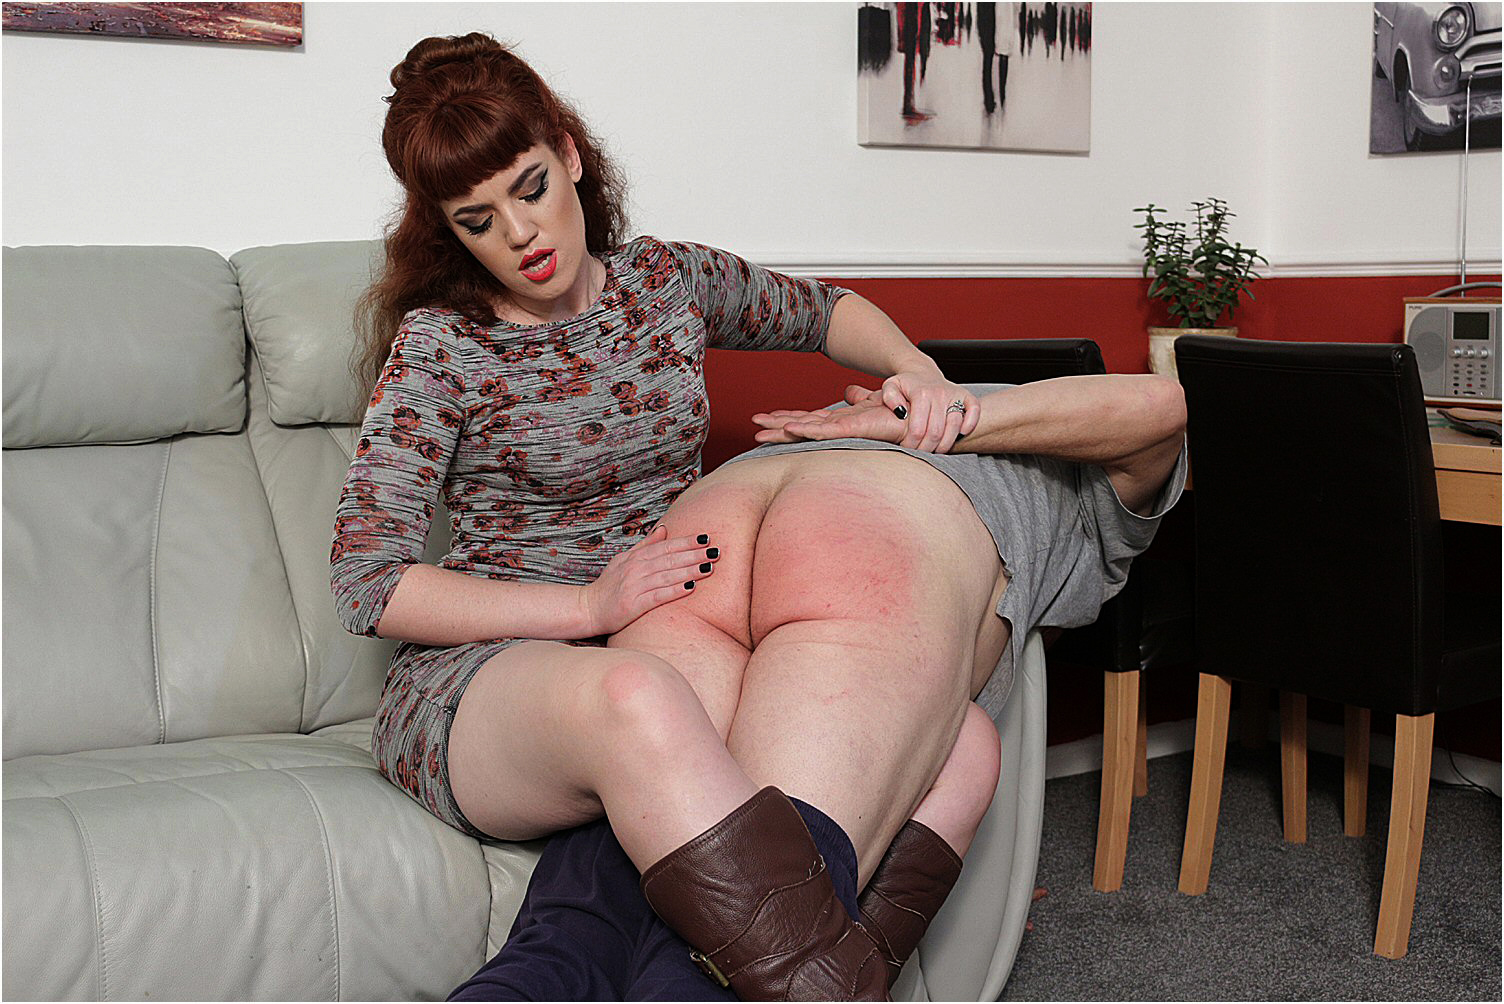 ladies spanking men